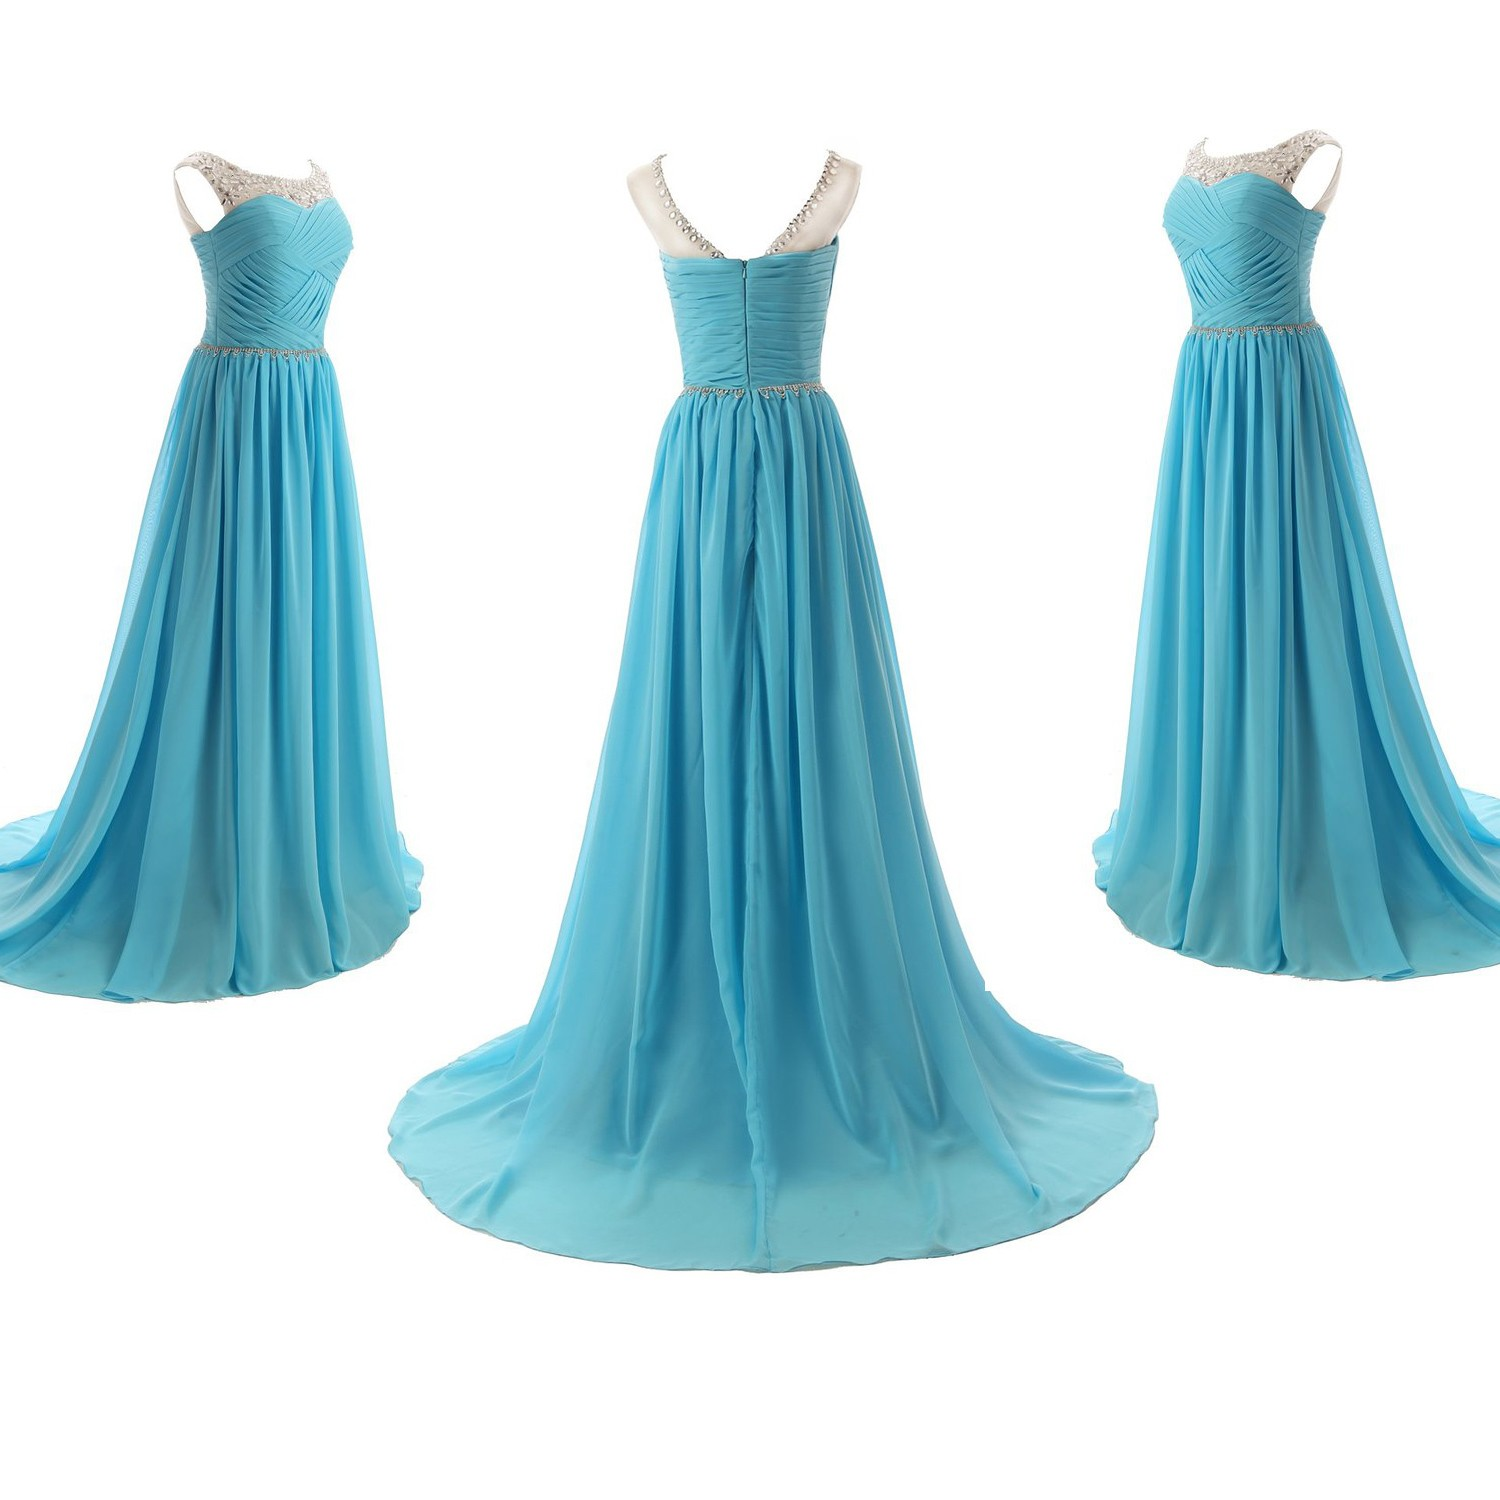 Elegant A-Line Scoop Long Chiffon Blue Evening/Prom Dress With Beading